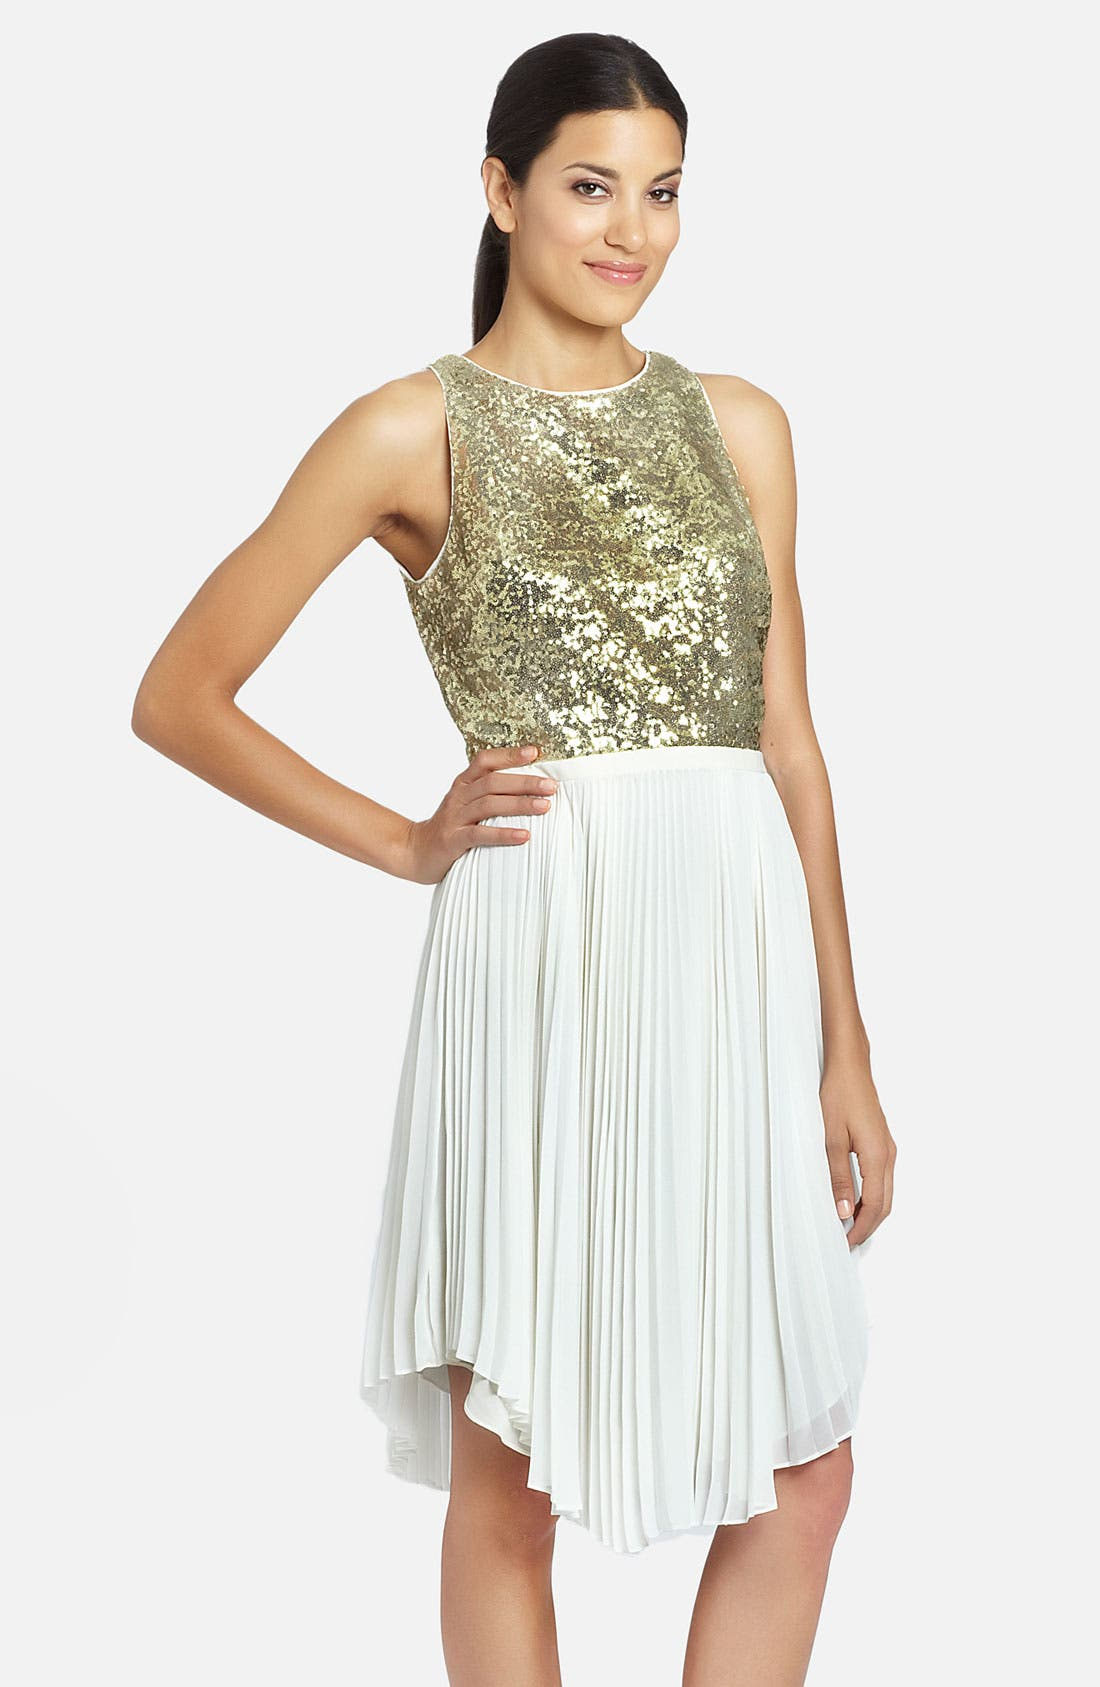 Alternate Image 1 Selected - Cynthia Steffe 'Malena' Sequin Bodice Pleated Handkerchief Dress